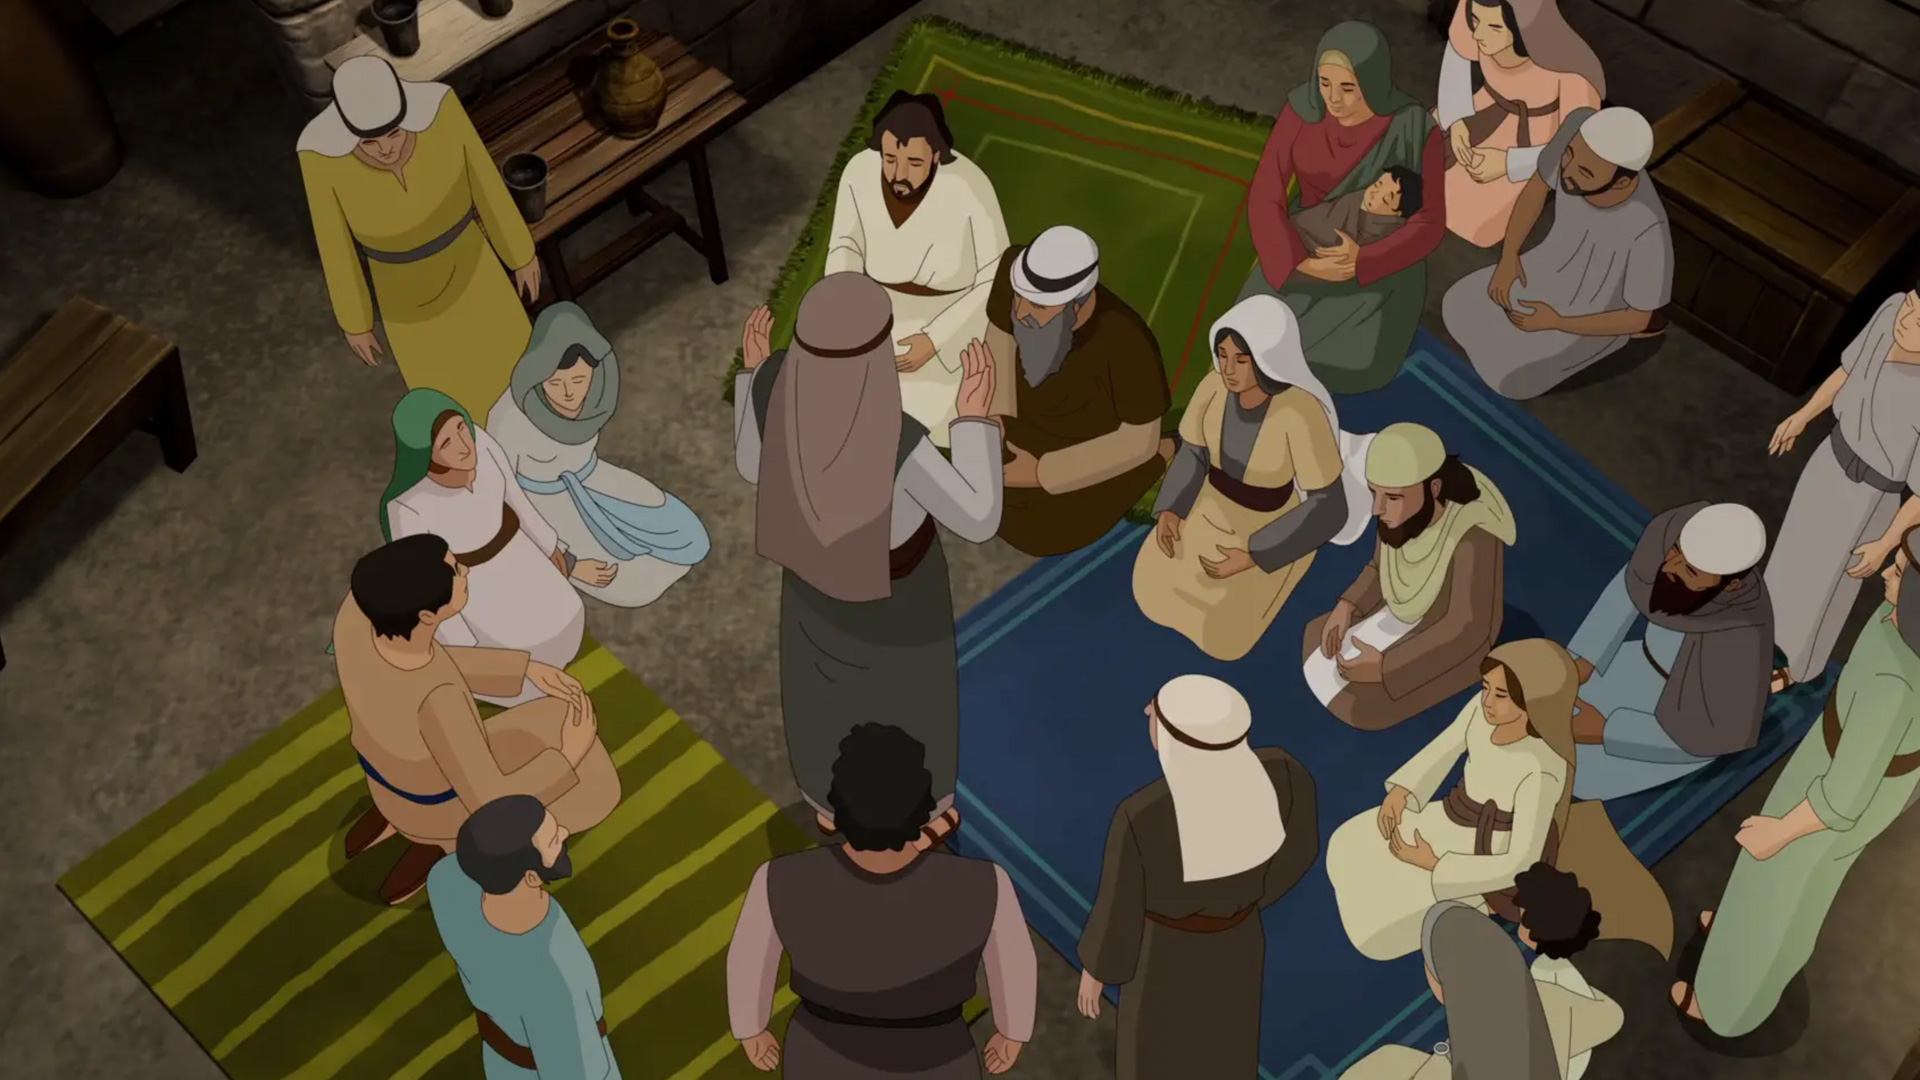 New Bible Animation Series